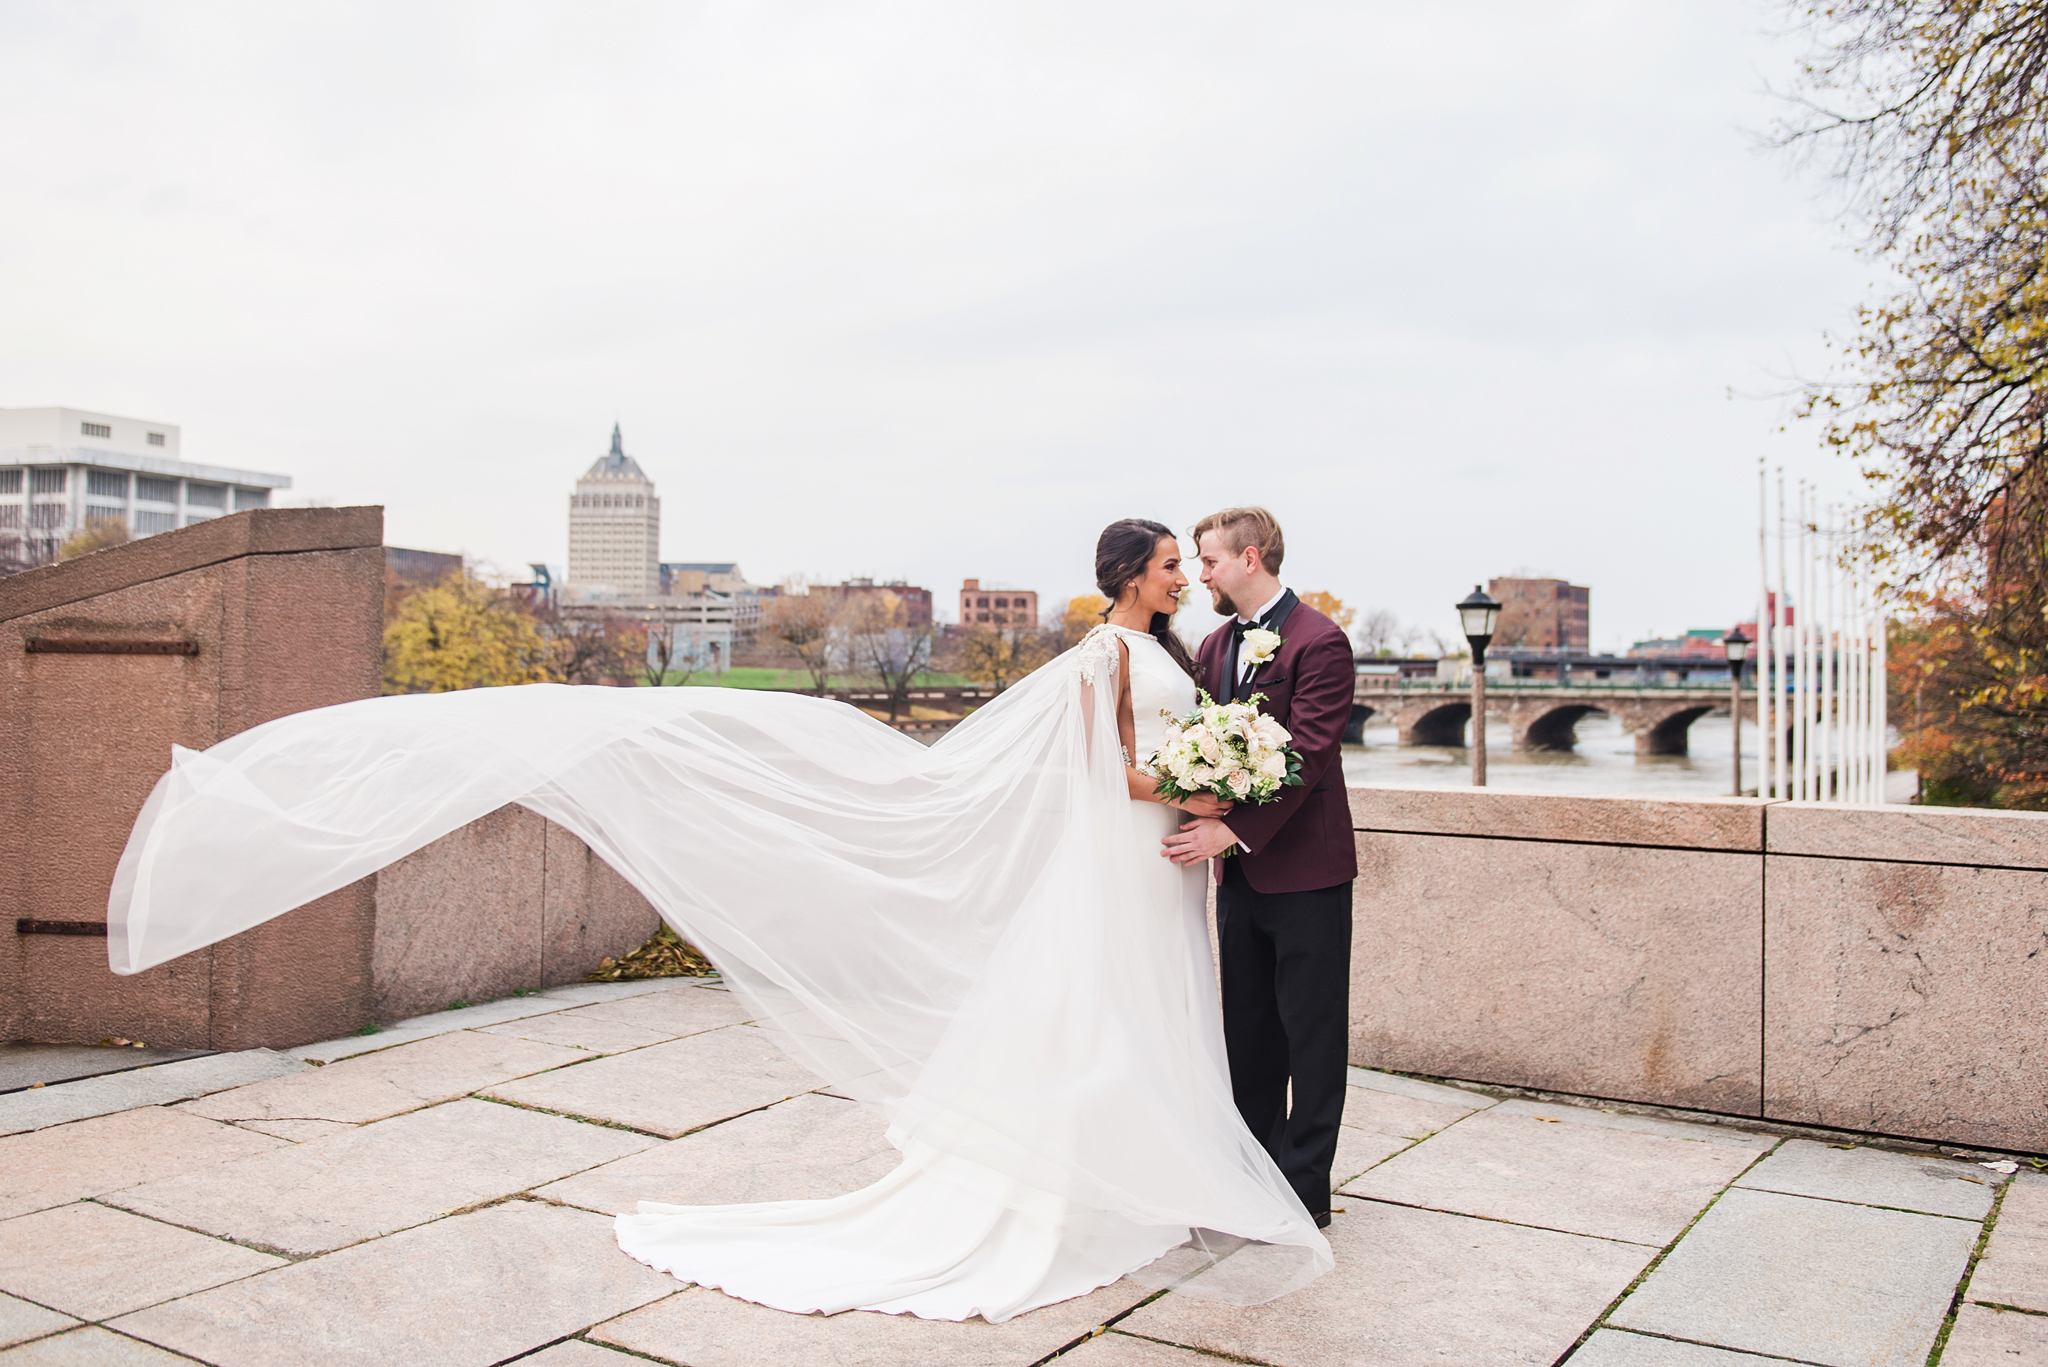 JILL_STUDIO_Wedding_JILL_STUDIO_Rochester_NY_Photographer_31-DSC_9149 (2).jpg